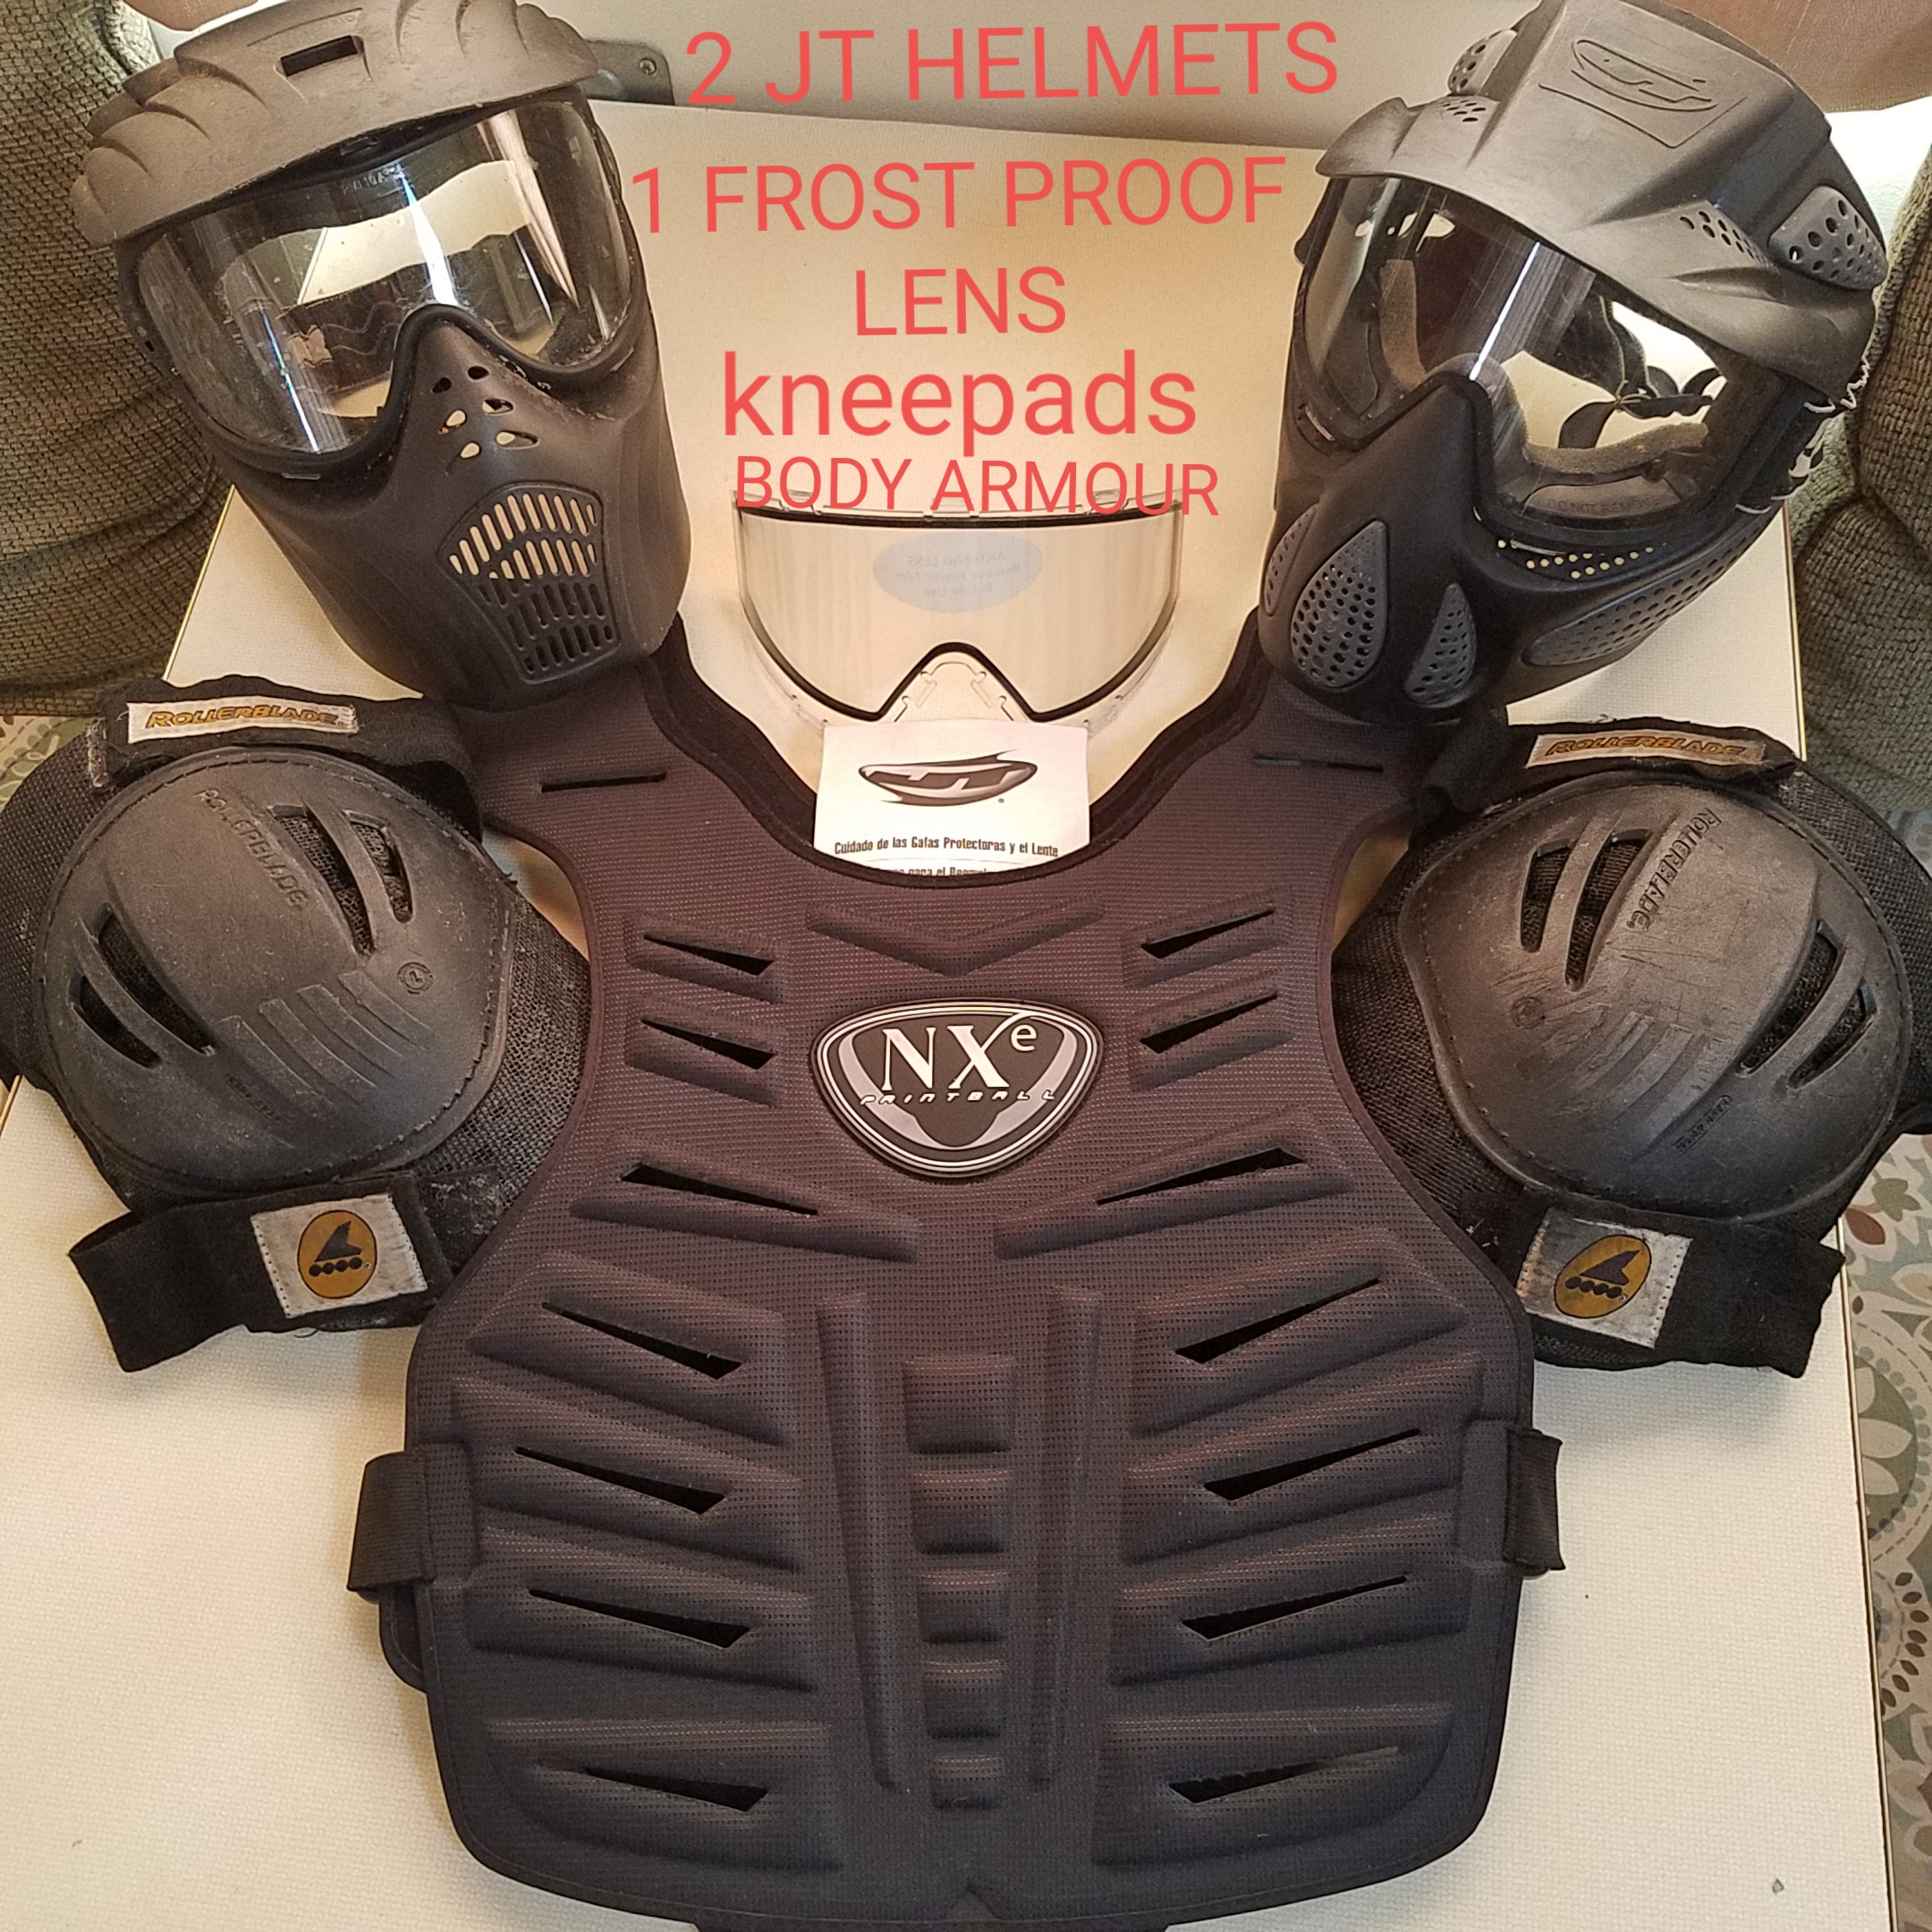 OVER $600.00 worth of PAINTBALL GEAR for ONLY $200.00